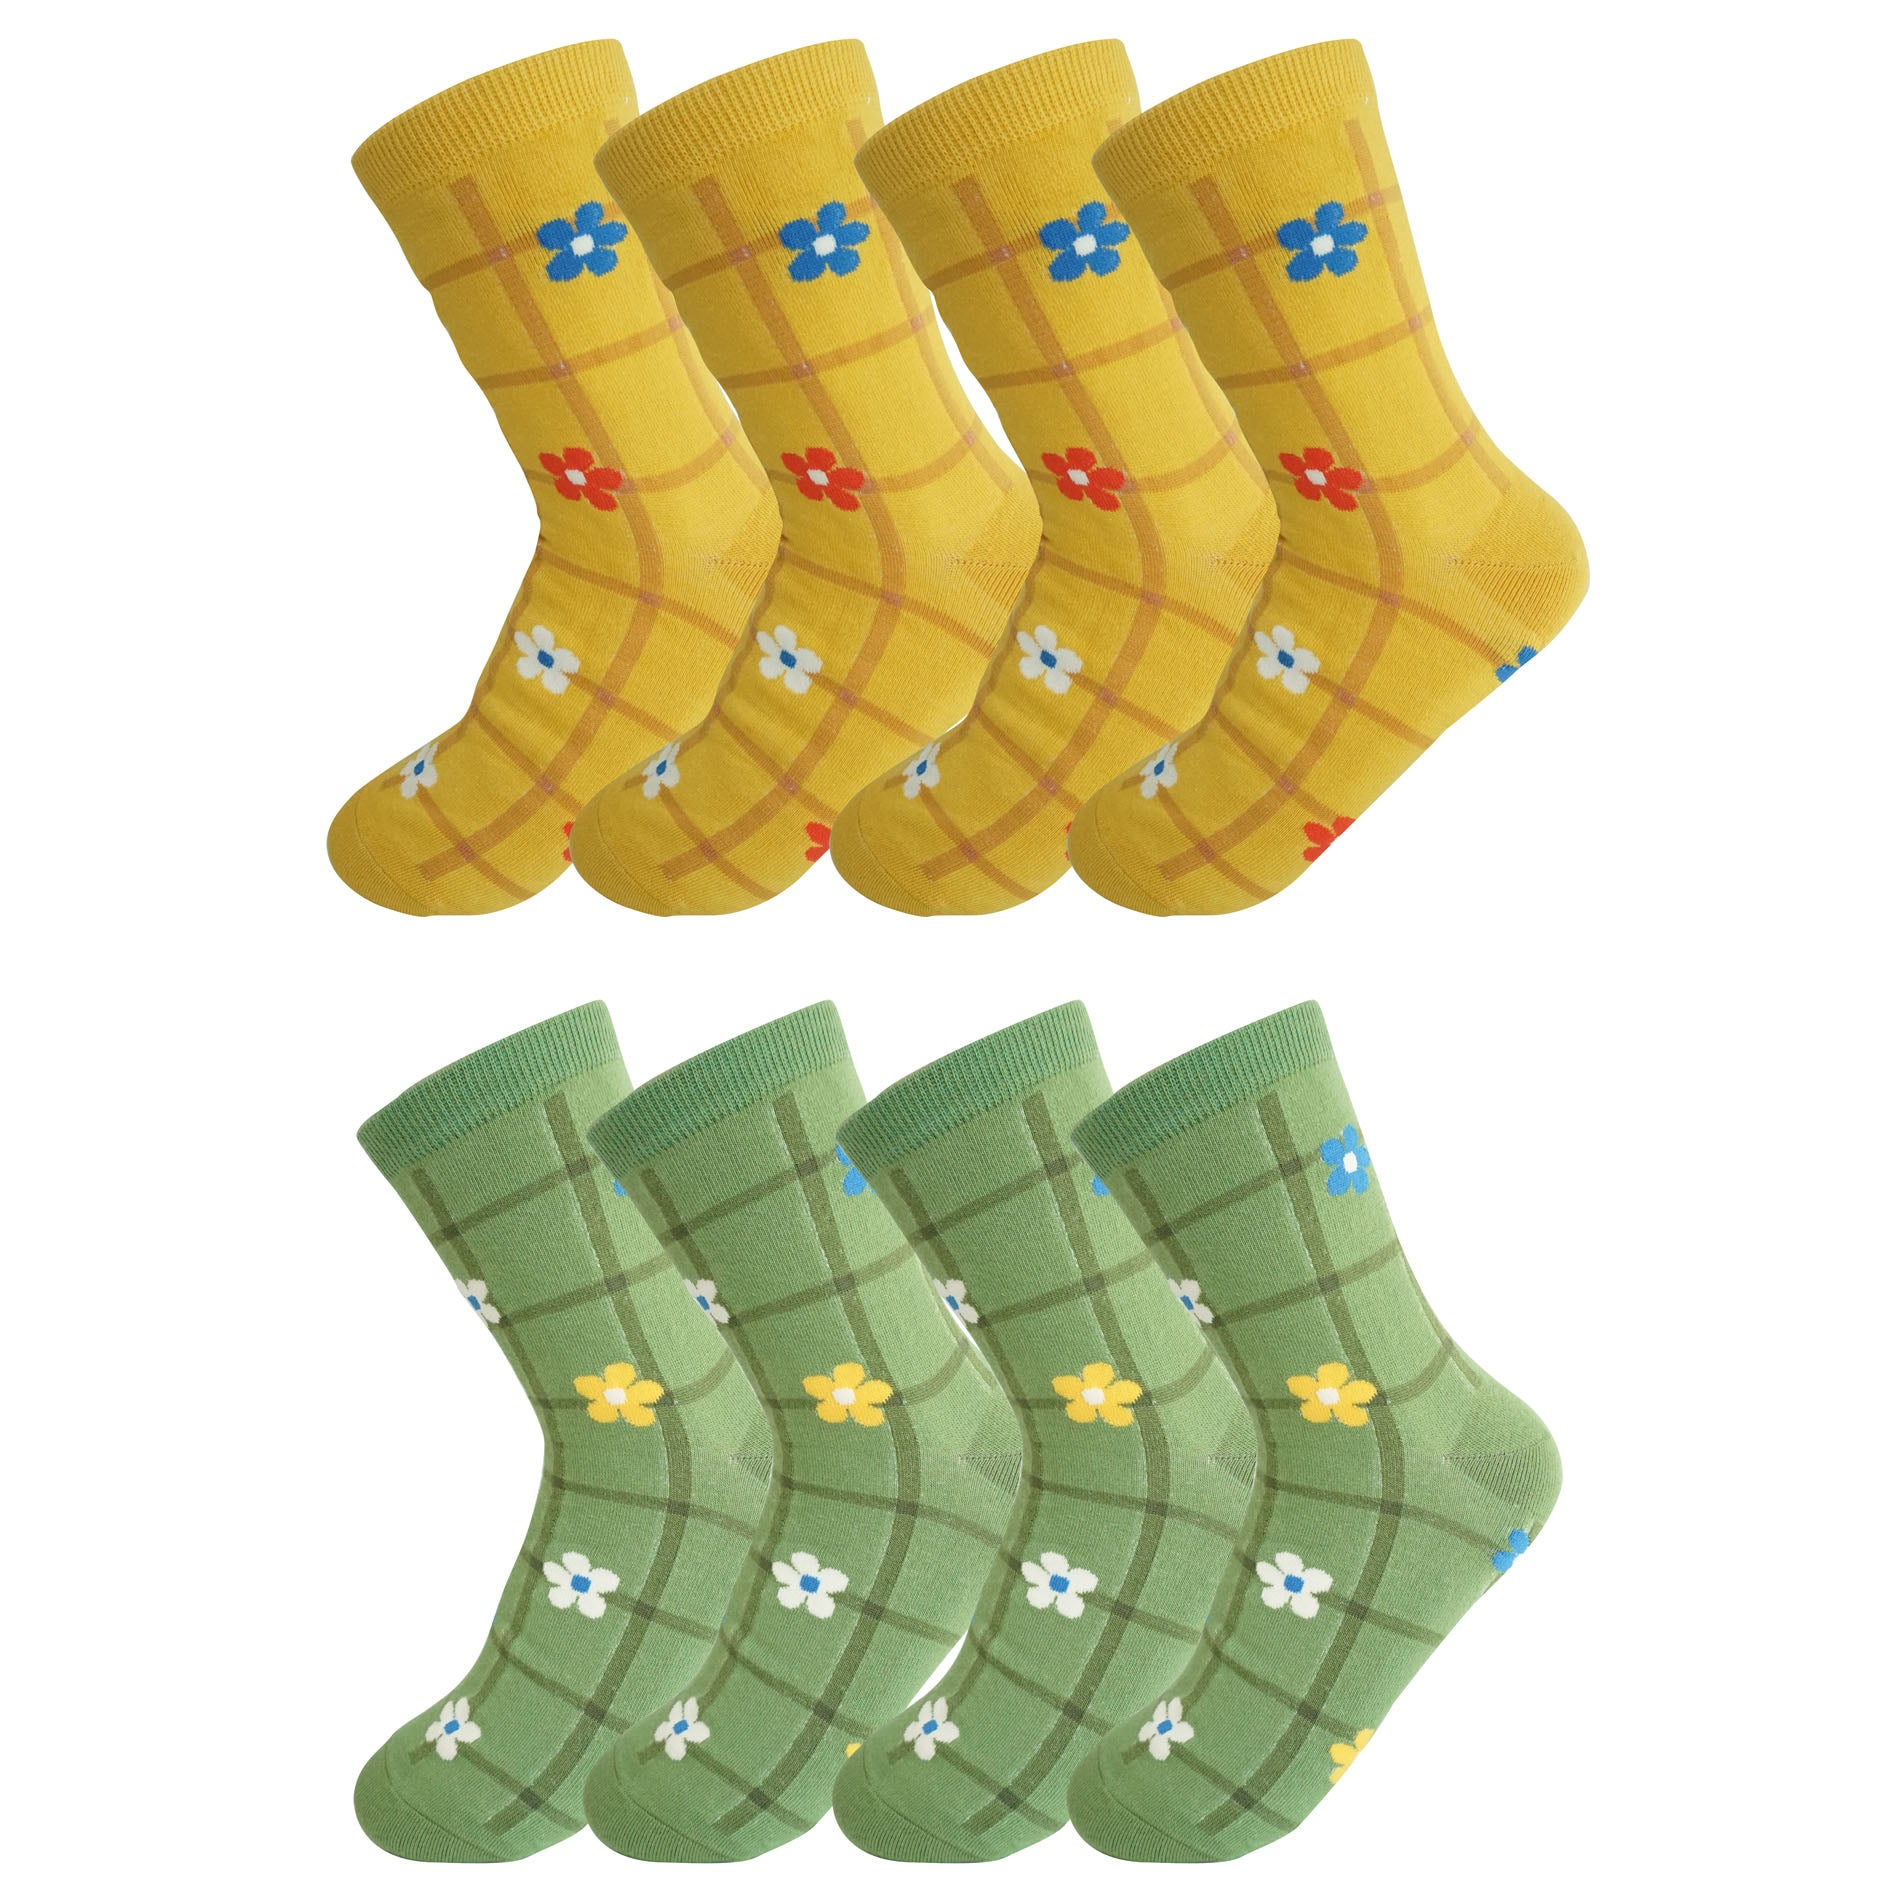 8 Pack Ladies Colorful Cotton Crew Socks Plaid and Flower